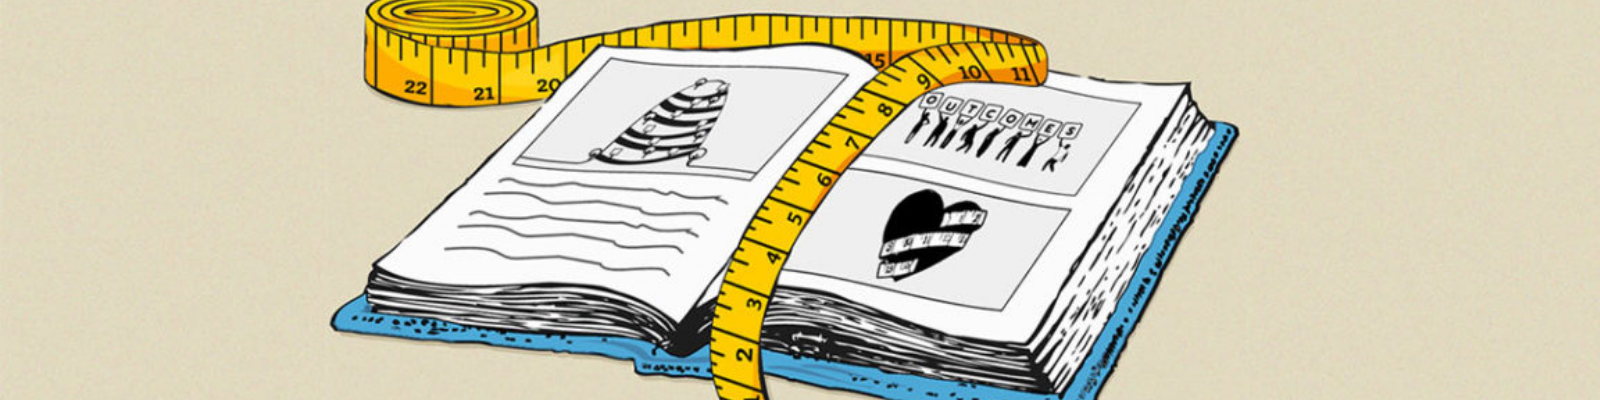 A guide to social impact measurement